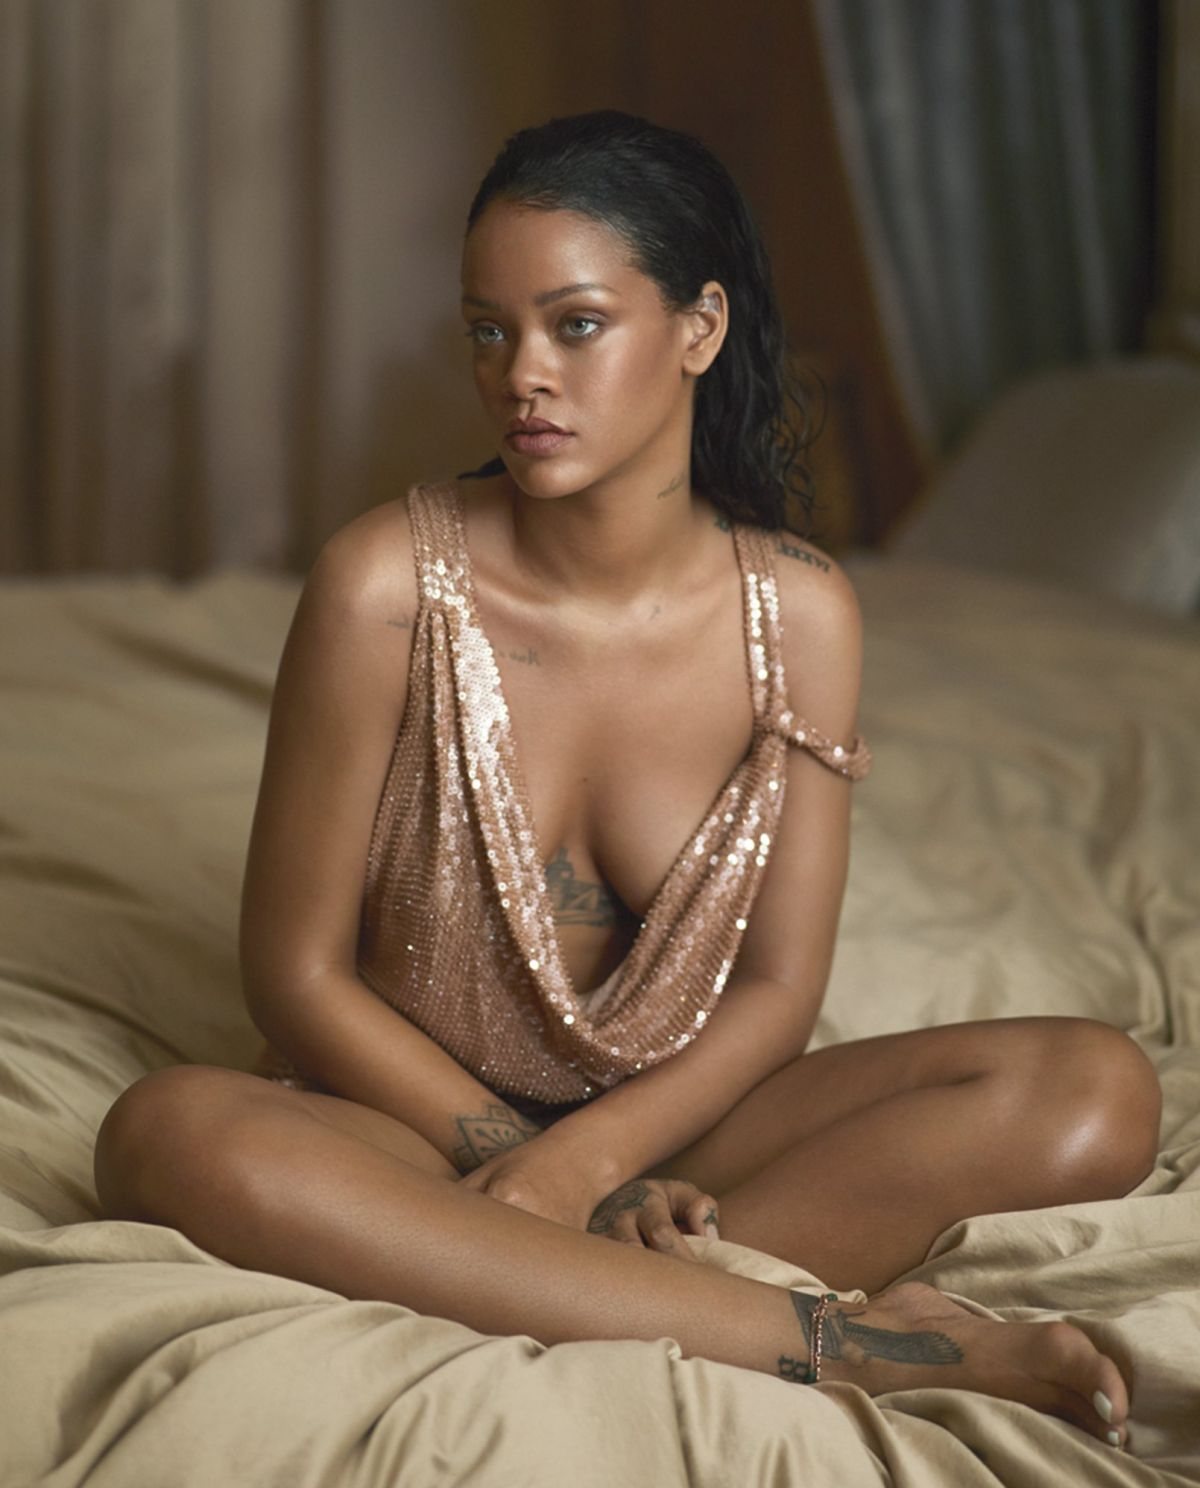 sexy pic of rihanna